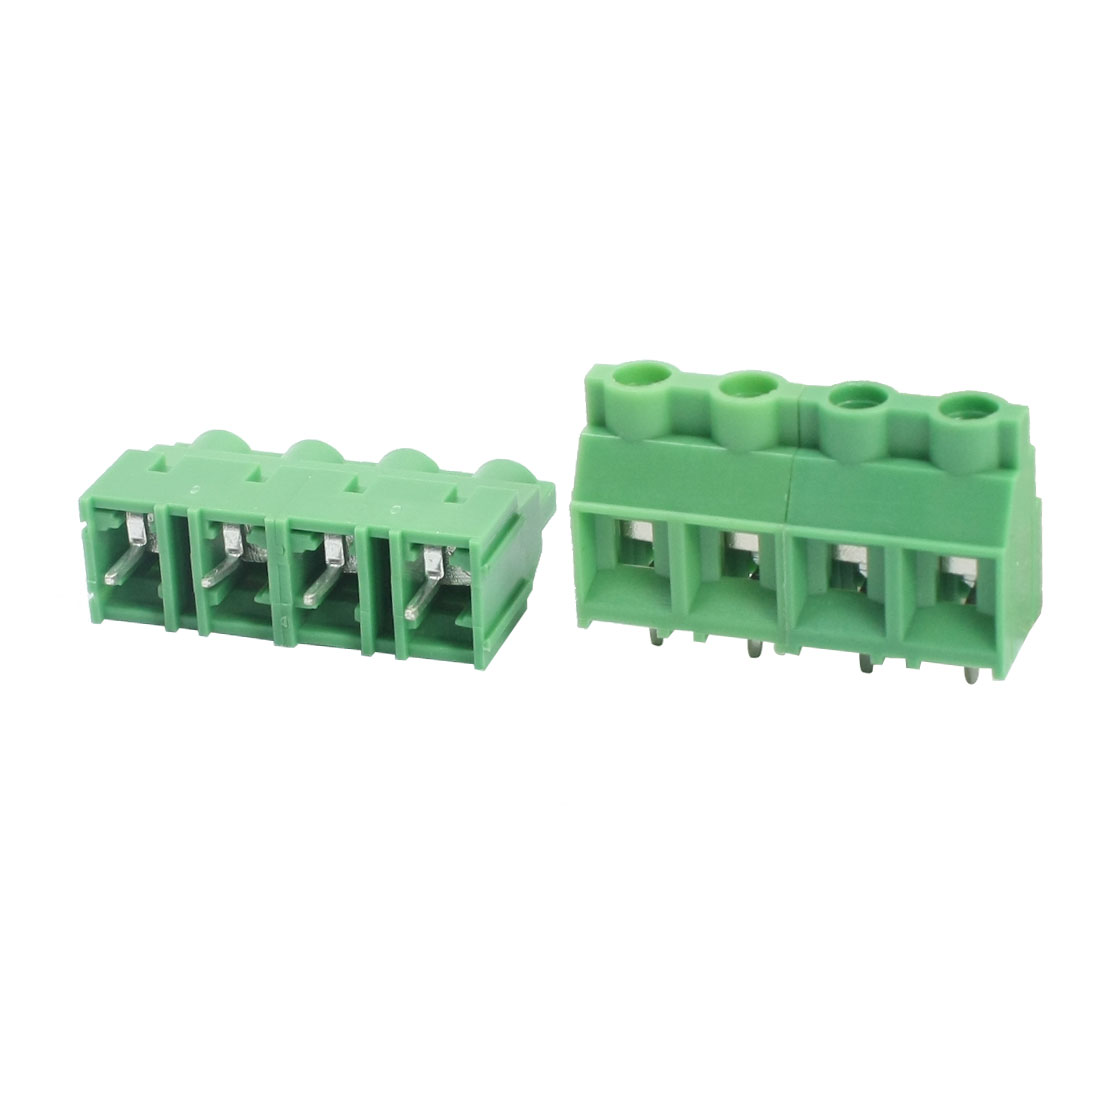 2Pcs KF950 300V 30A 9.5mm Pitch 4-Pin Plug in Straight PCB Mounting Screw Terminal Block Connector